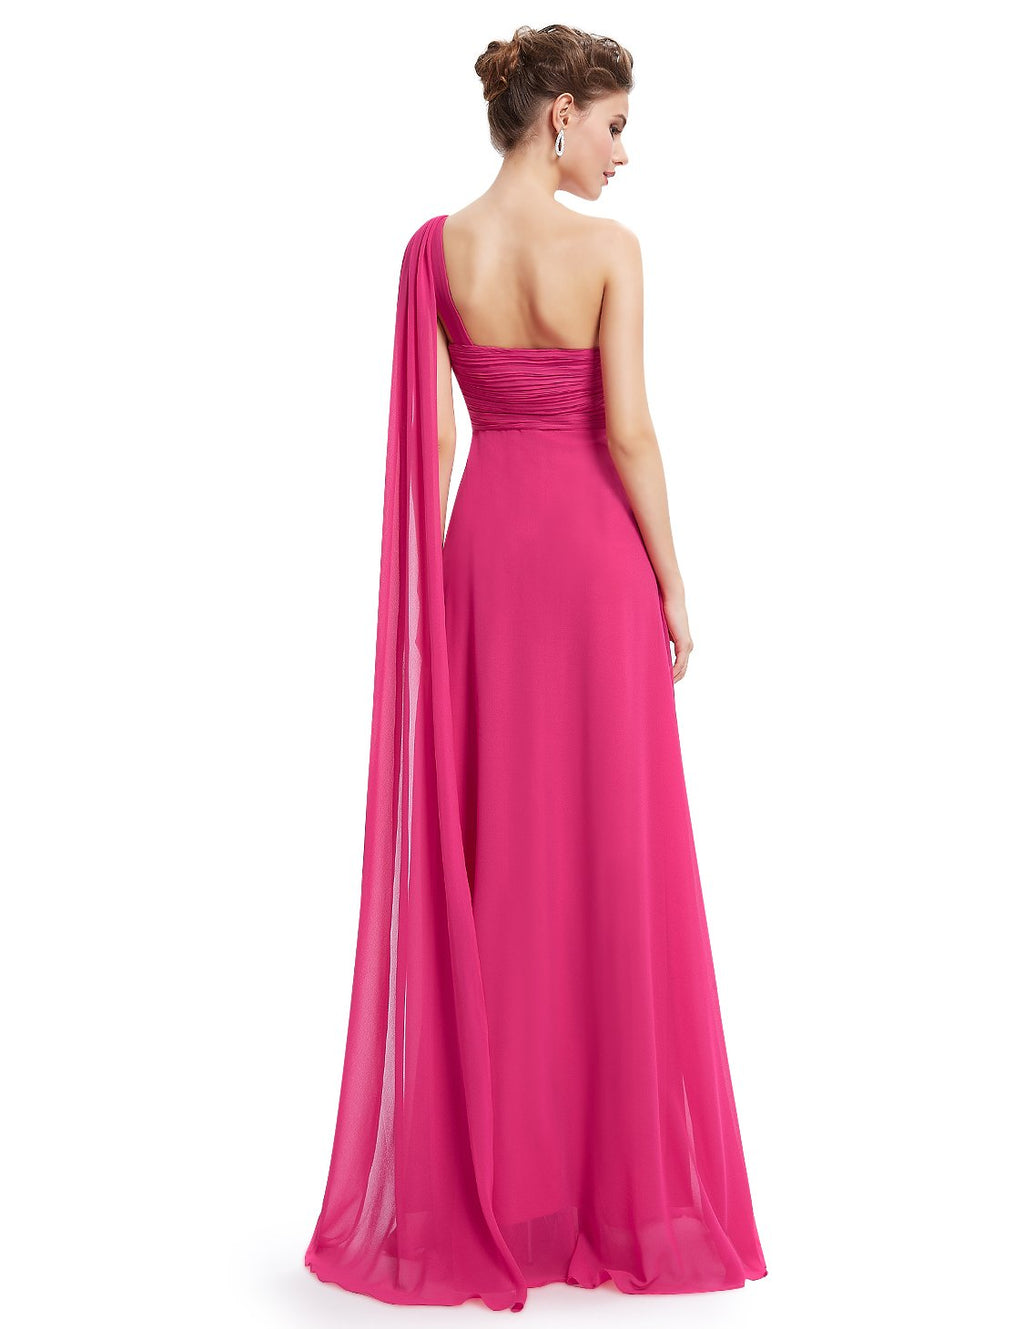 One Shoulder Simple Long Party Dress Hot Pink